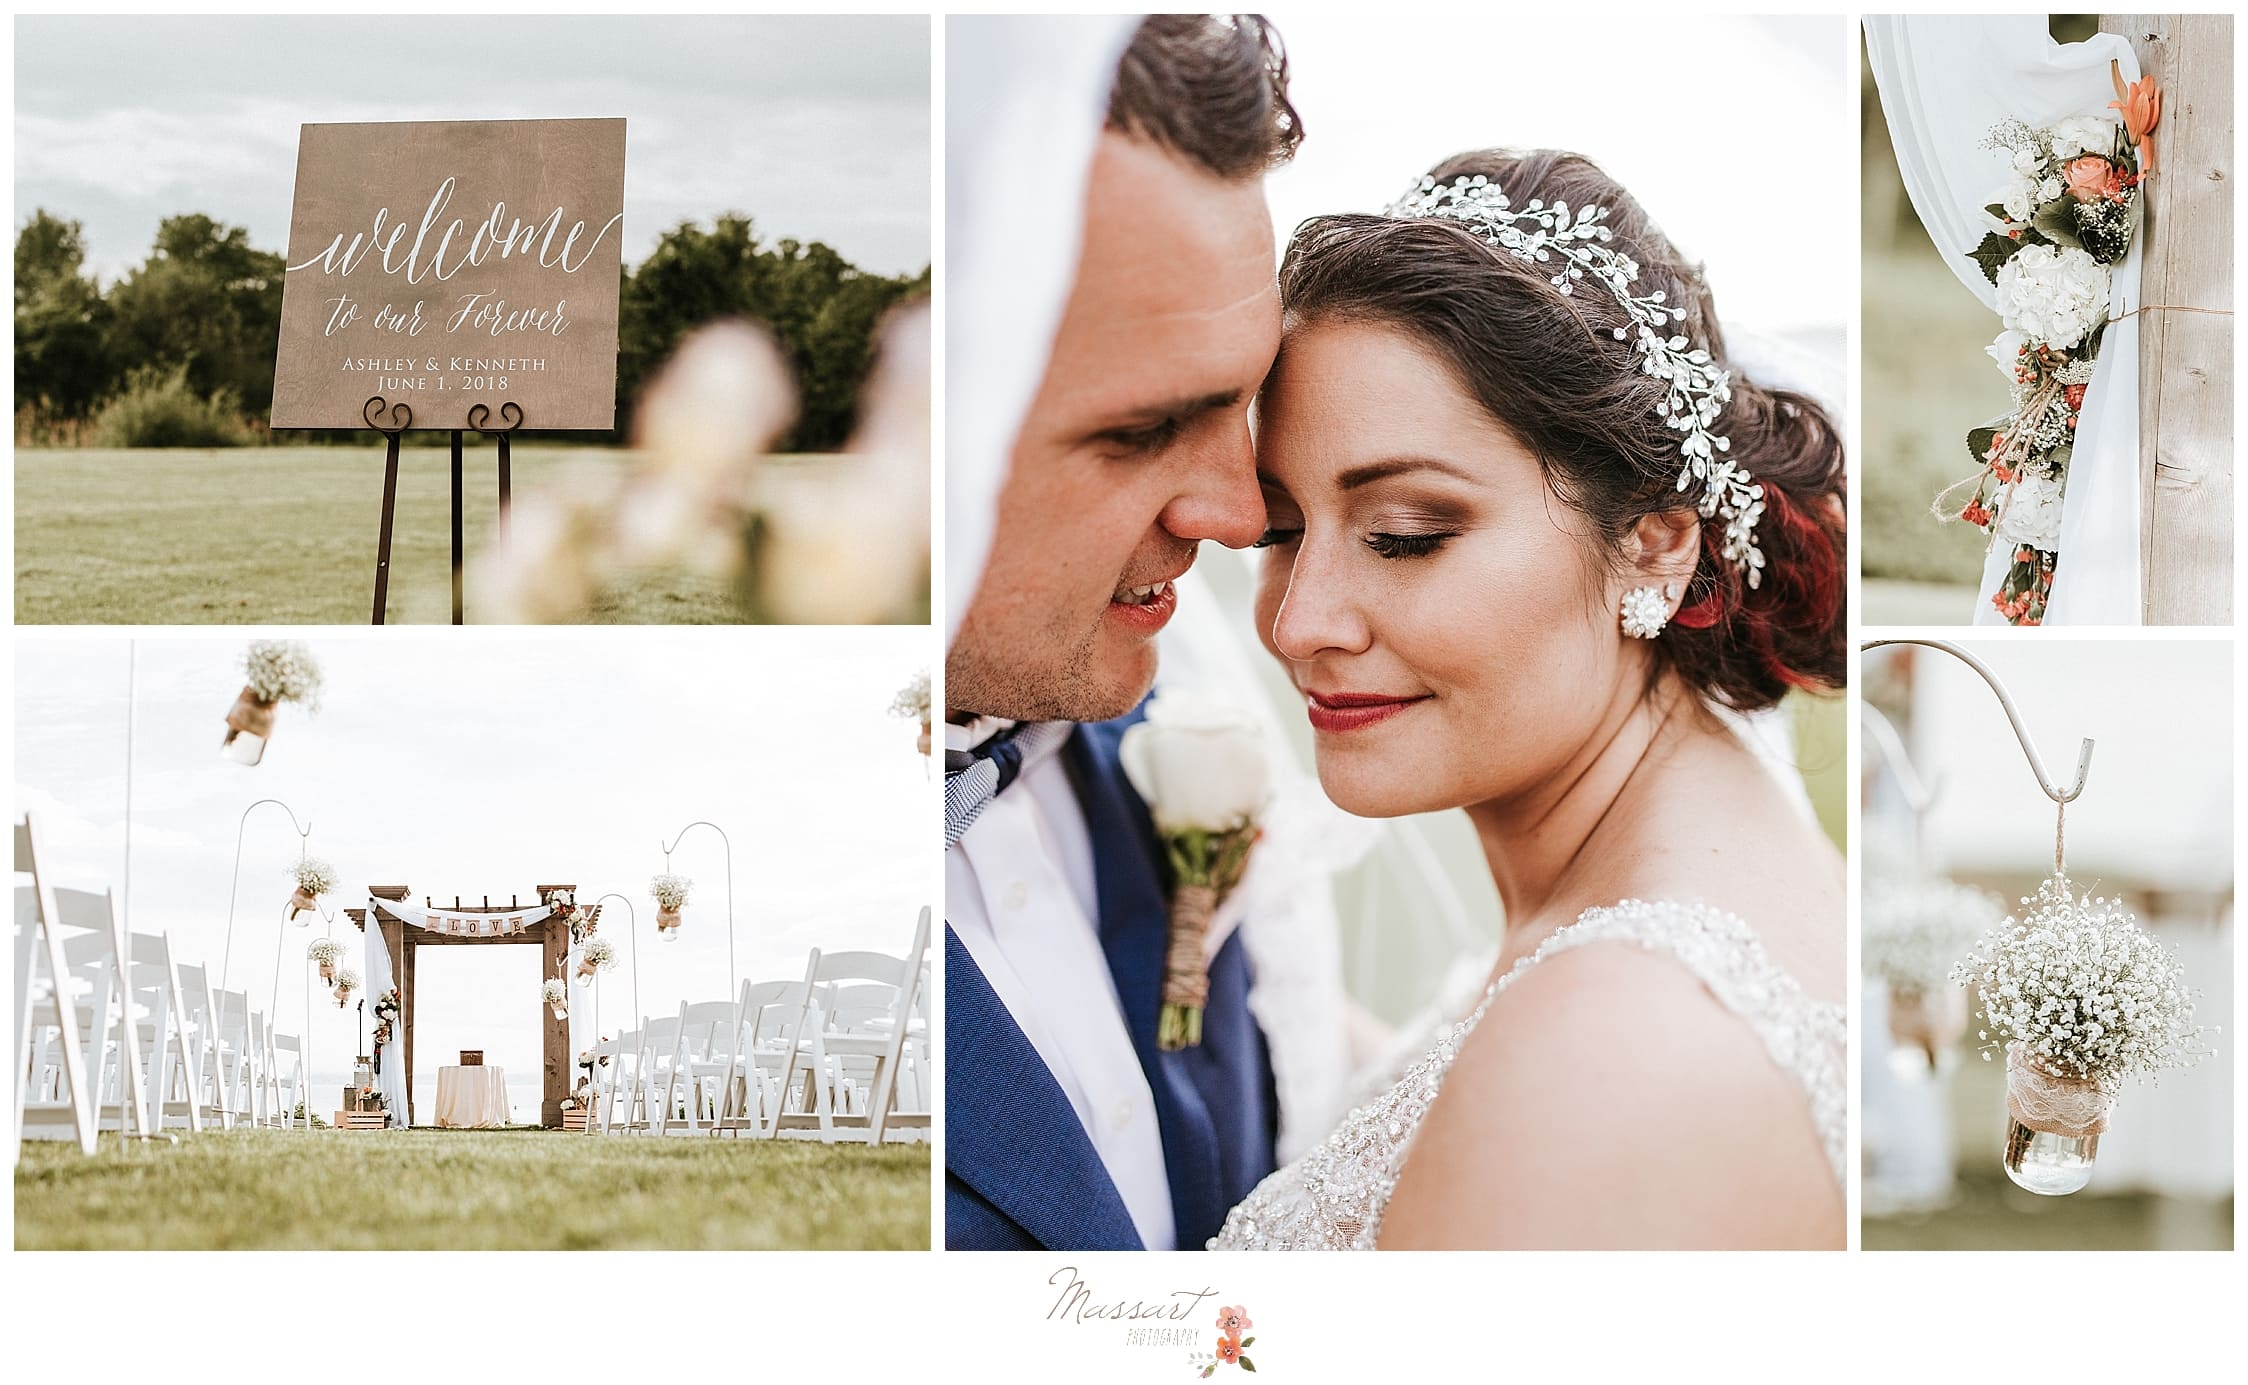 Outdoor summer wedding with rustic touches photographed by RI wedding photographers Massart Photography.